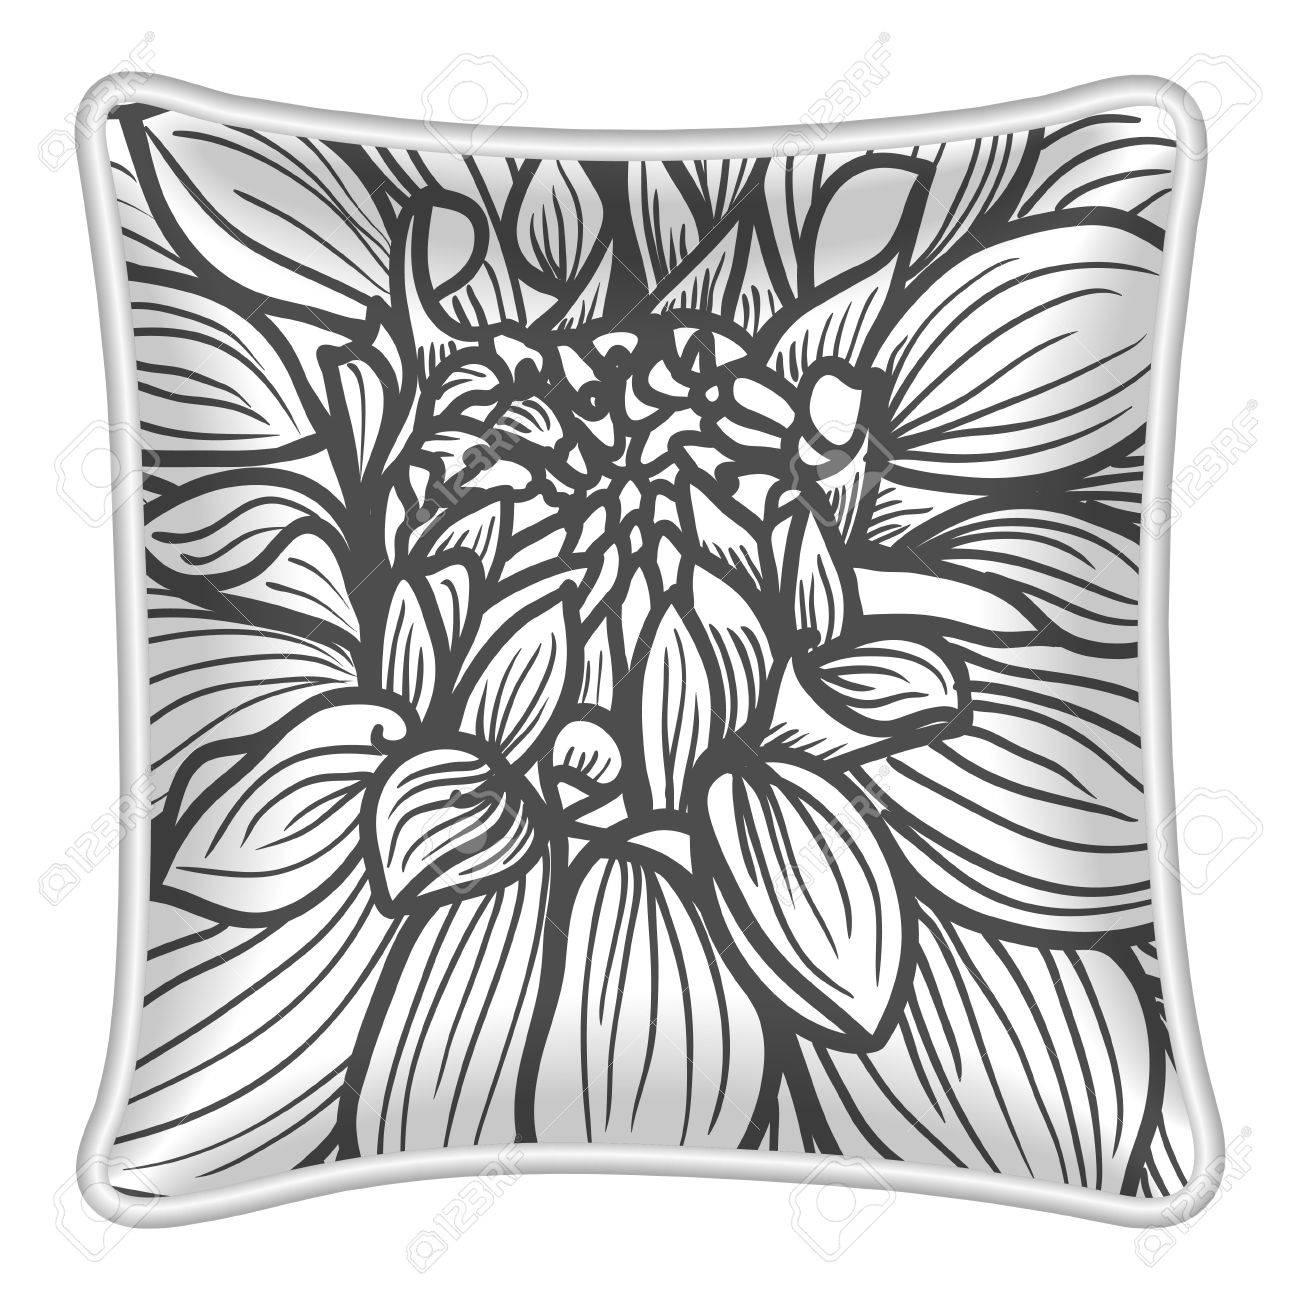 Interior Design Element Decorative Pillow With Patterned Pillowcase Floral Pattern